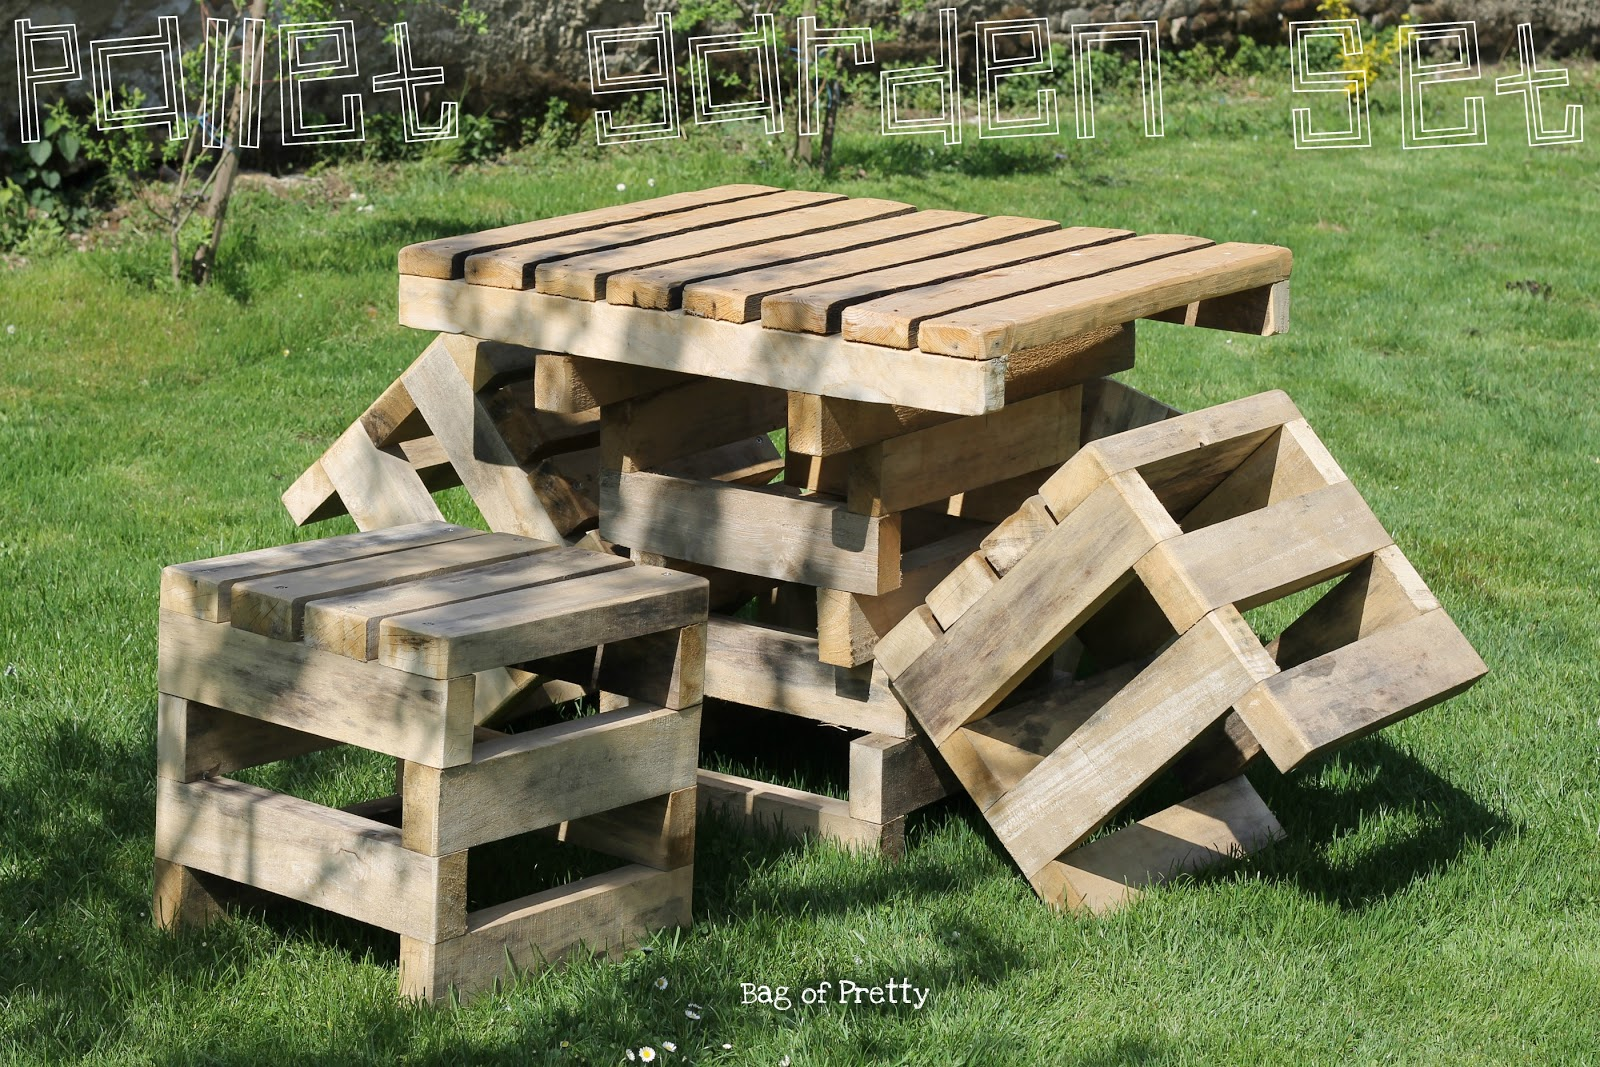 Bag of pretty surprise surprise pallet garden furniture Chairs made out of wooden pallets